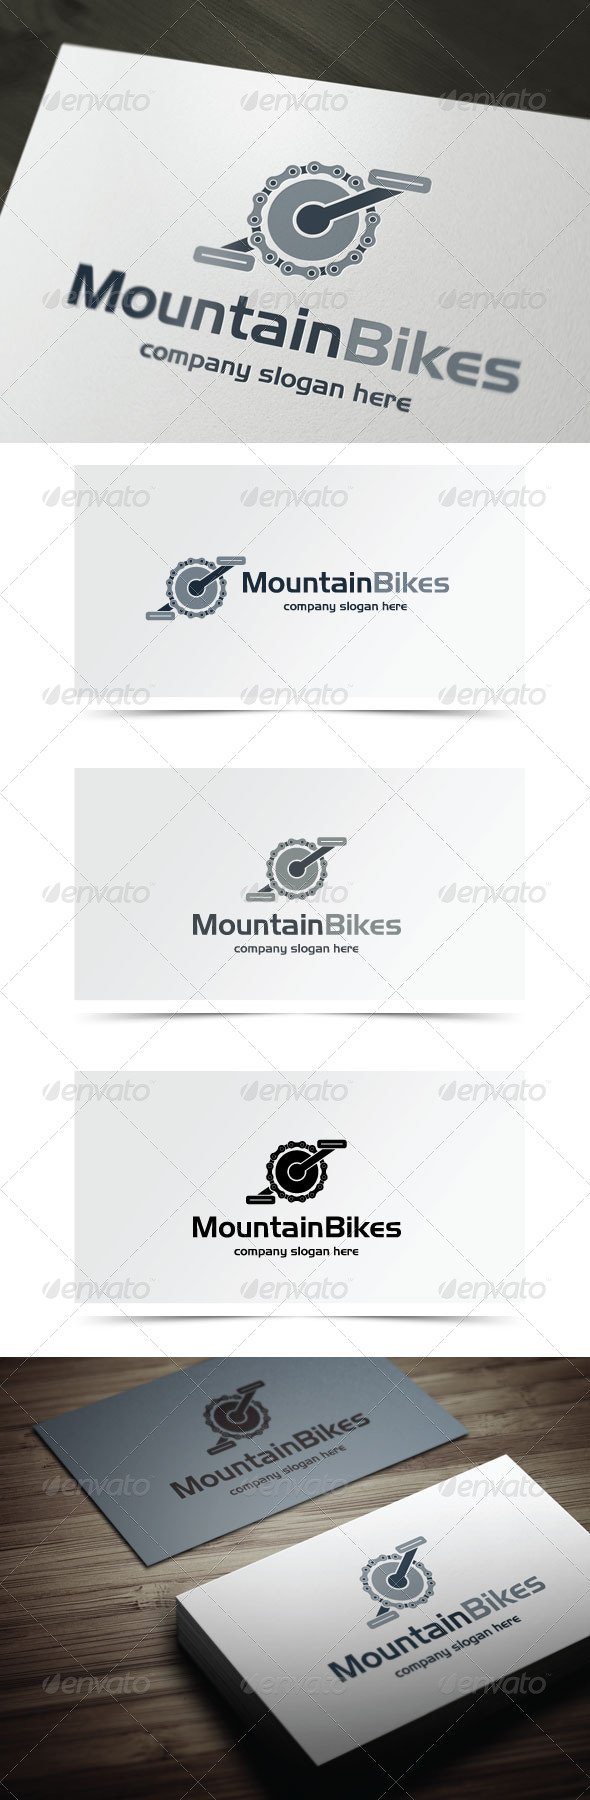 GraphicRiver Mountain Bikes 5980703